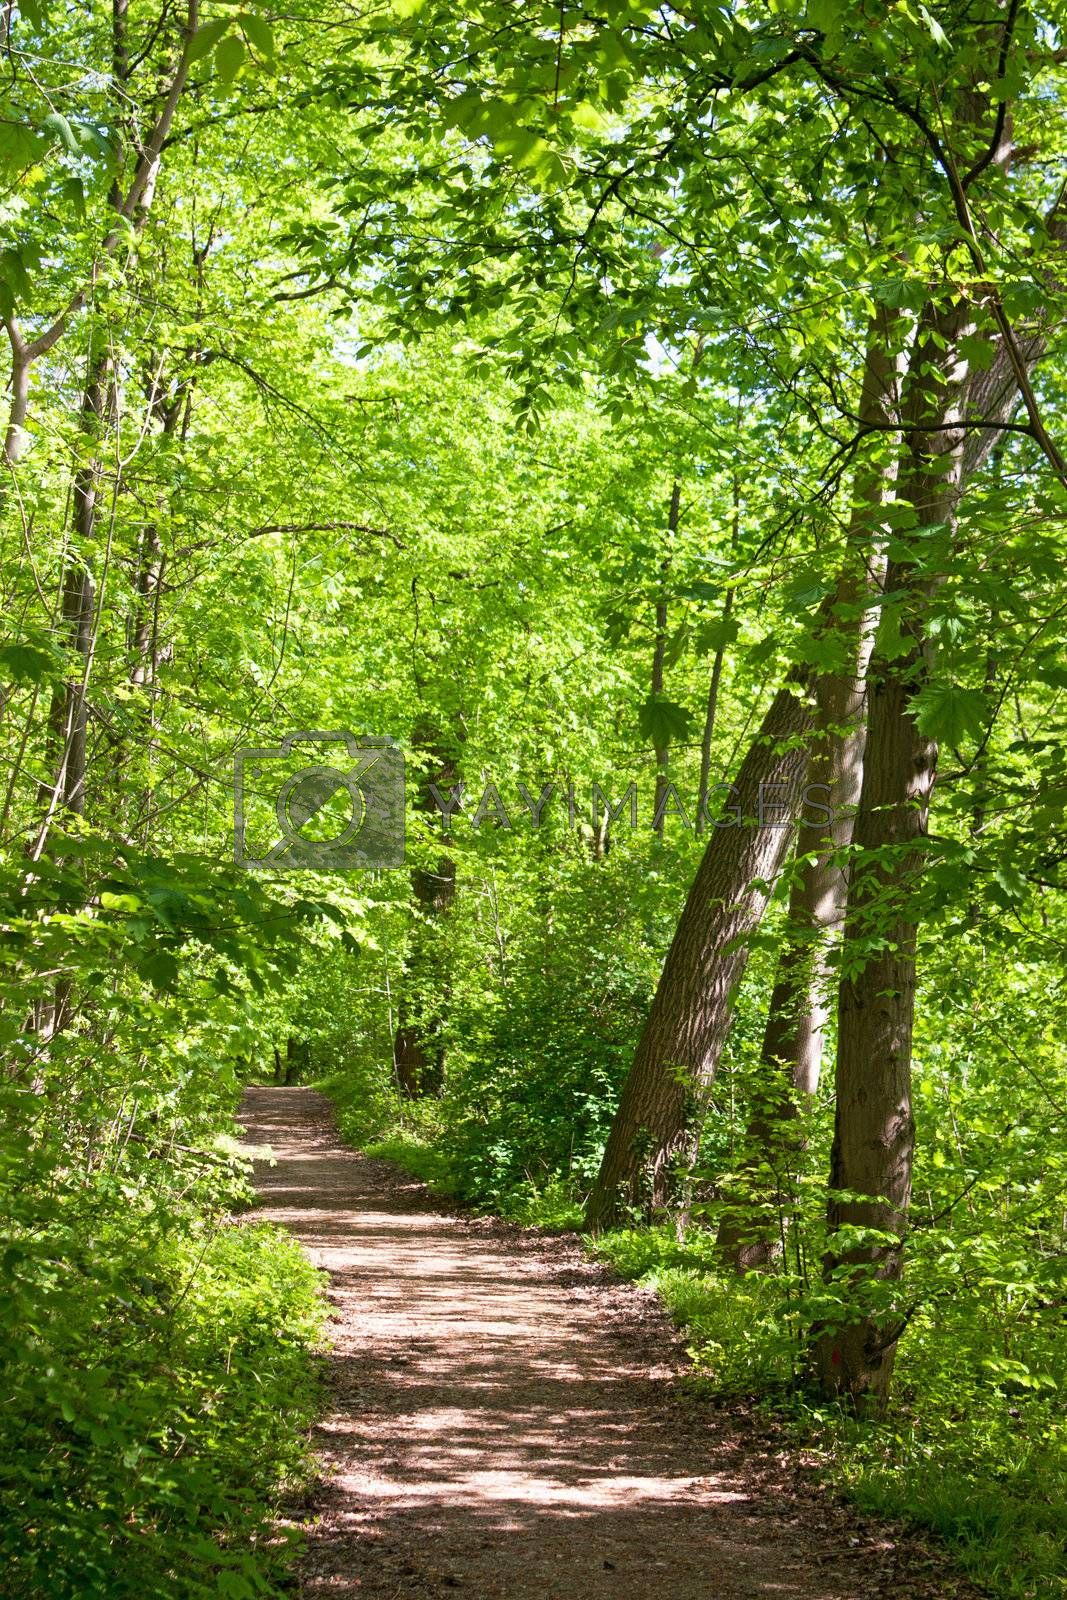 Landscape of path in spring season with nice and peaceful trees